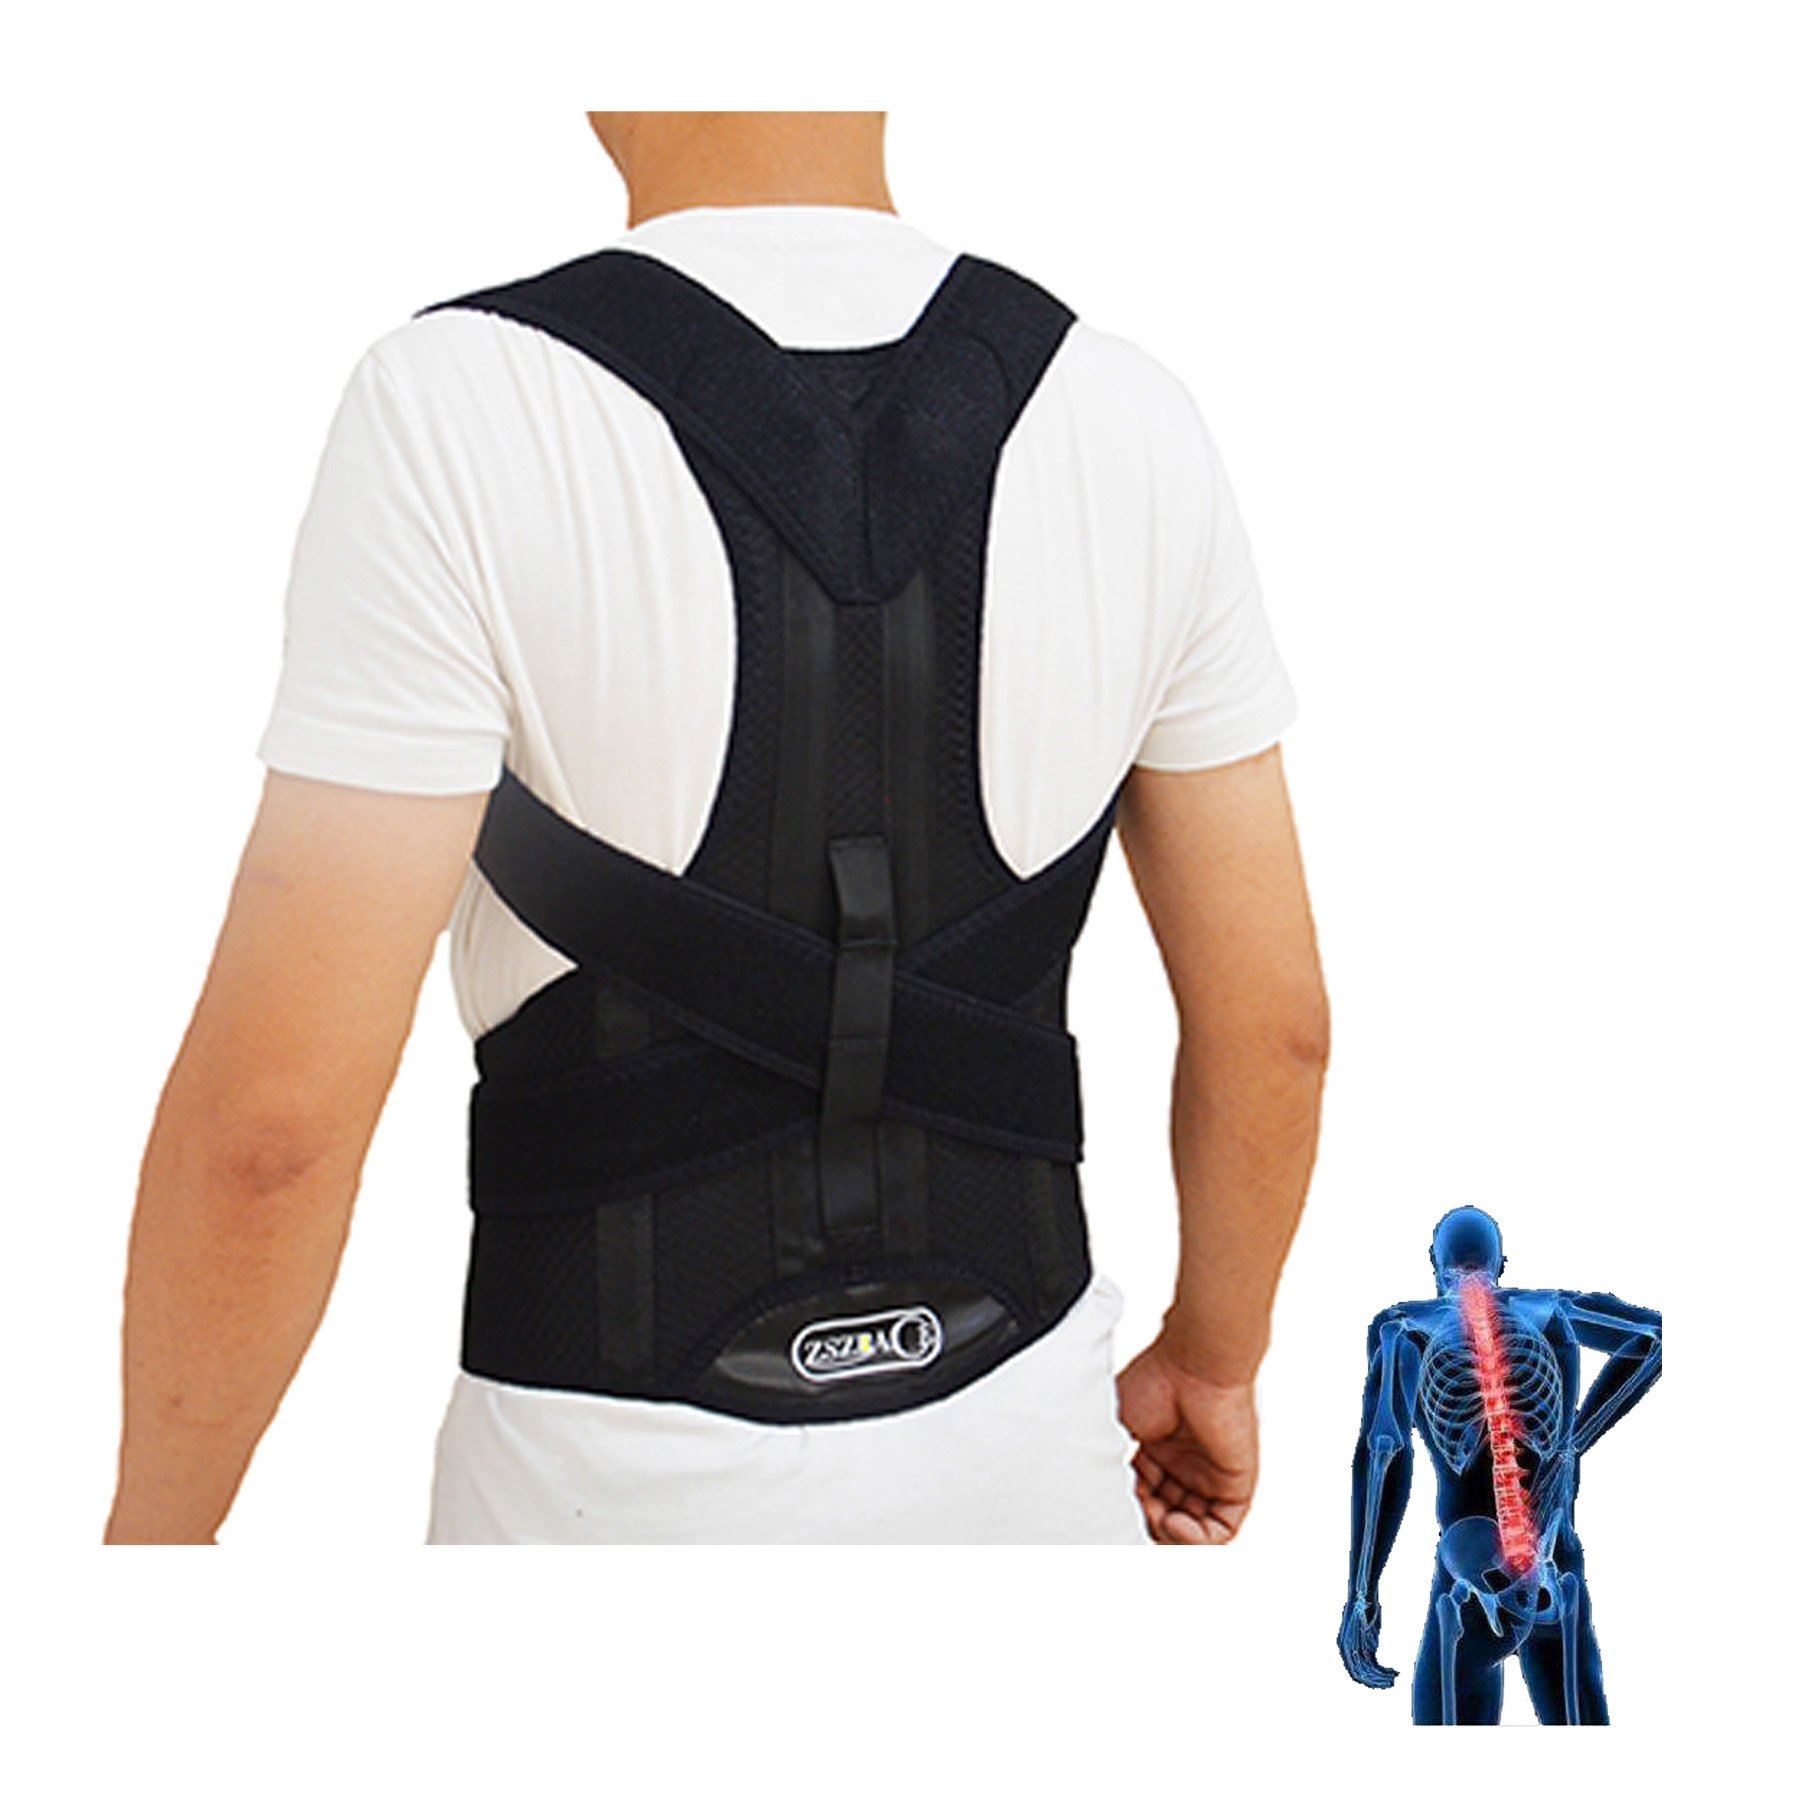 ZSZBACE Posture Corrector Under Clothes- Back Brace- Adjustable Clavicle Shoulder Support- Improve Posture& Slouching Correction- Shoulder, Back & Neck Pain Relief for Men and Women (L)